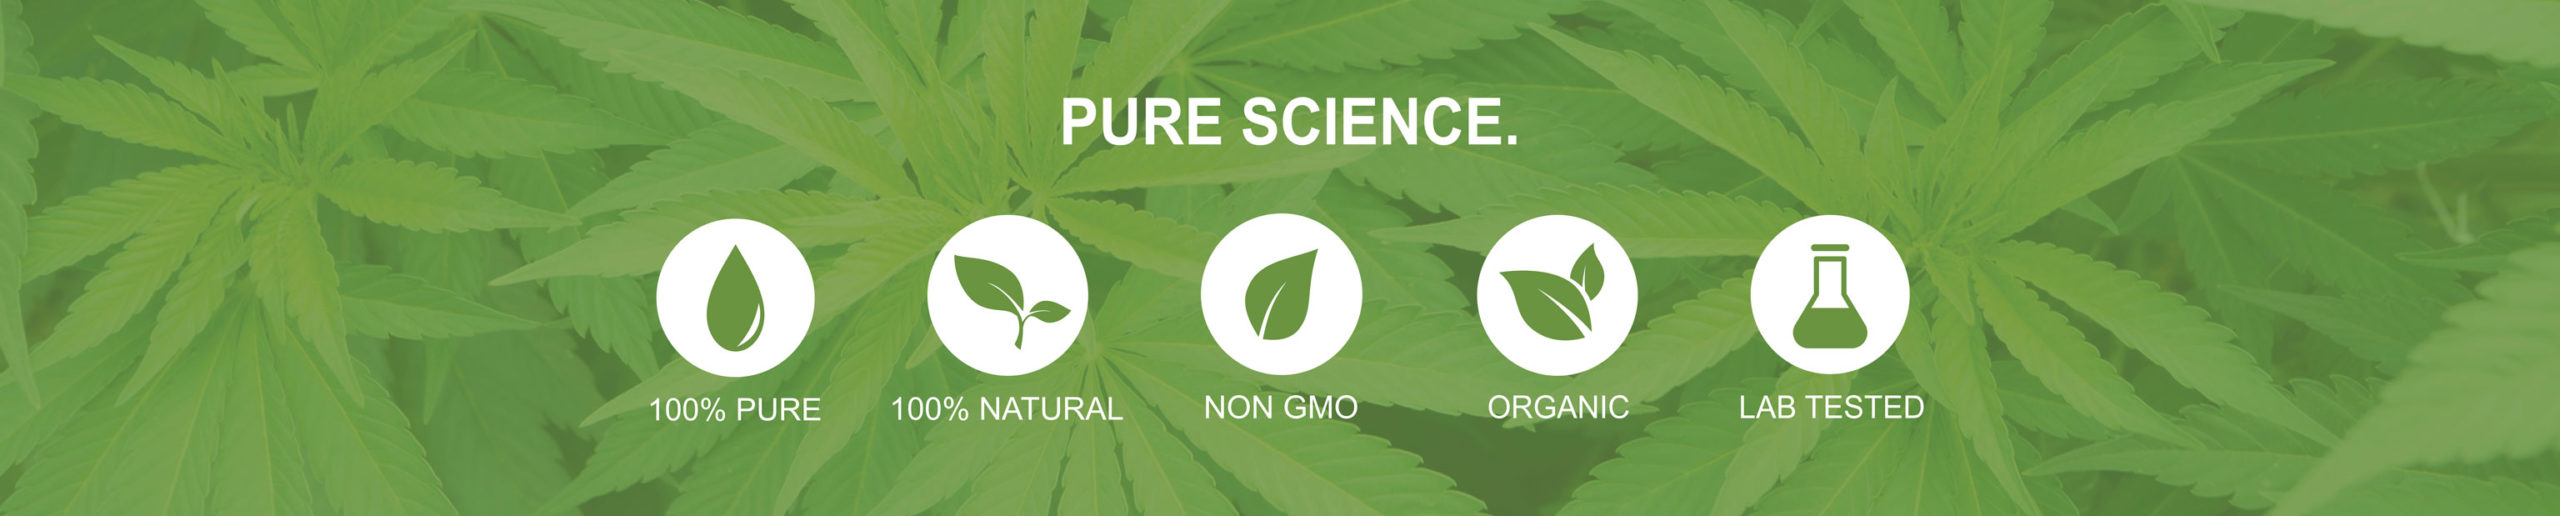 Pure Science Home Page Banner